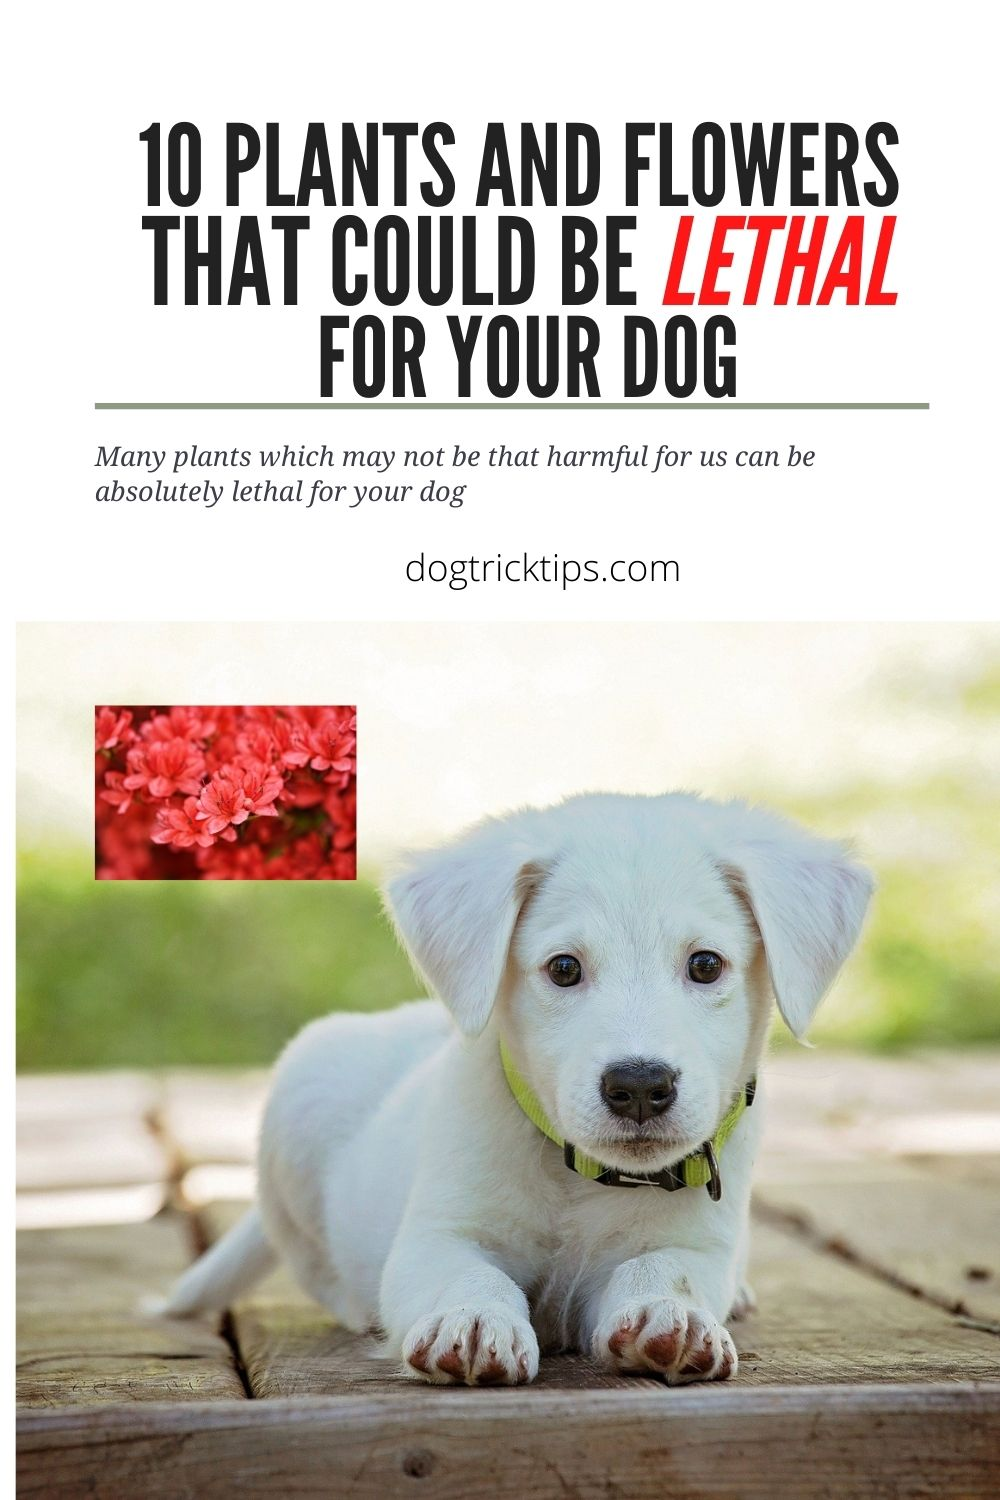 10 Plants and Flowers that could be Lethal for your Dog